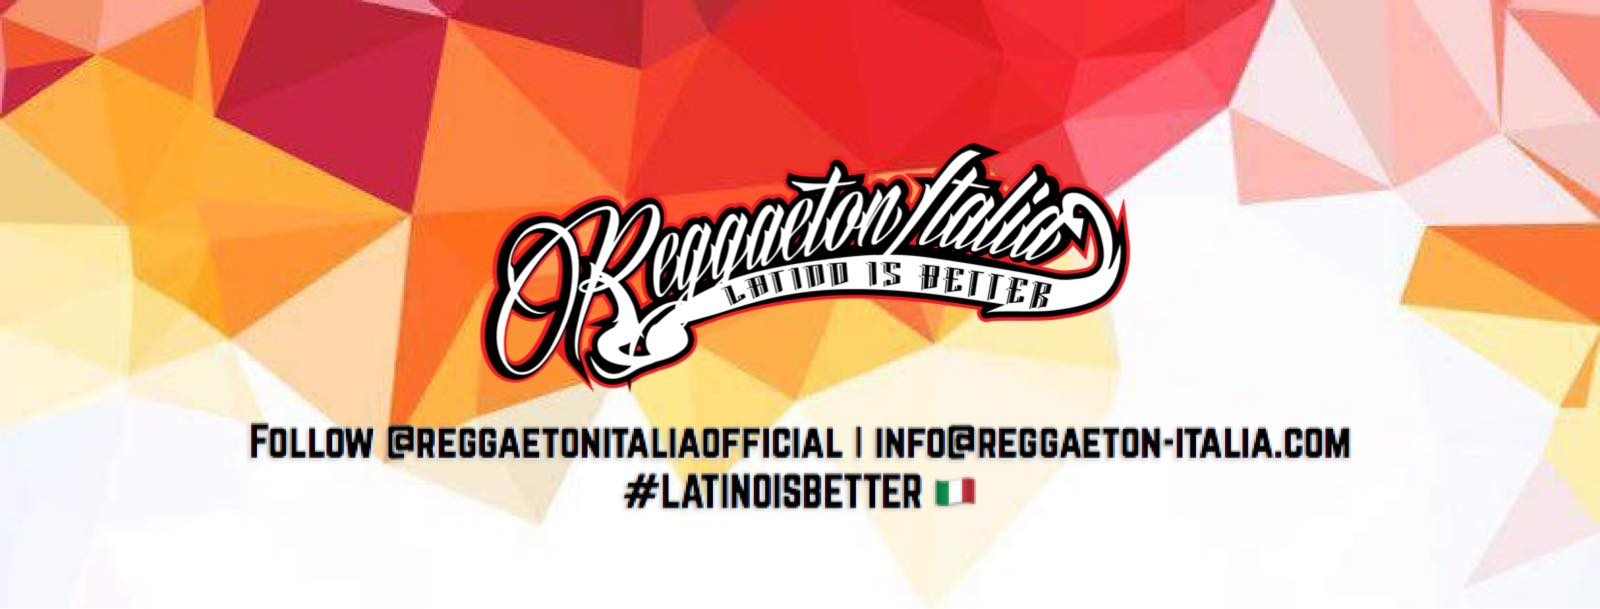 REGGAETON ITALIA | Latino is better.